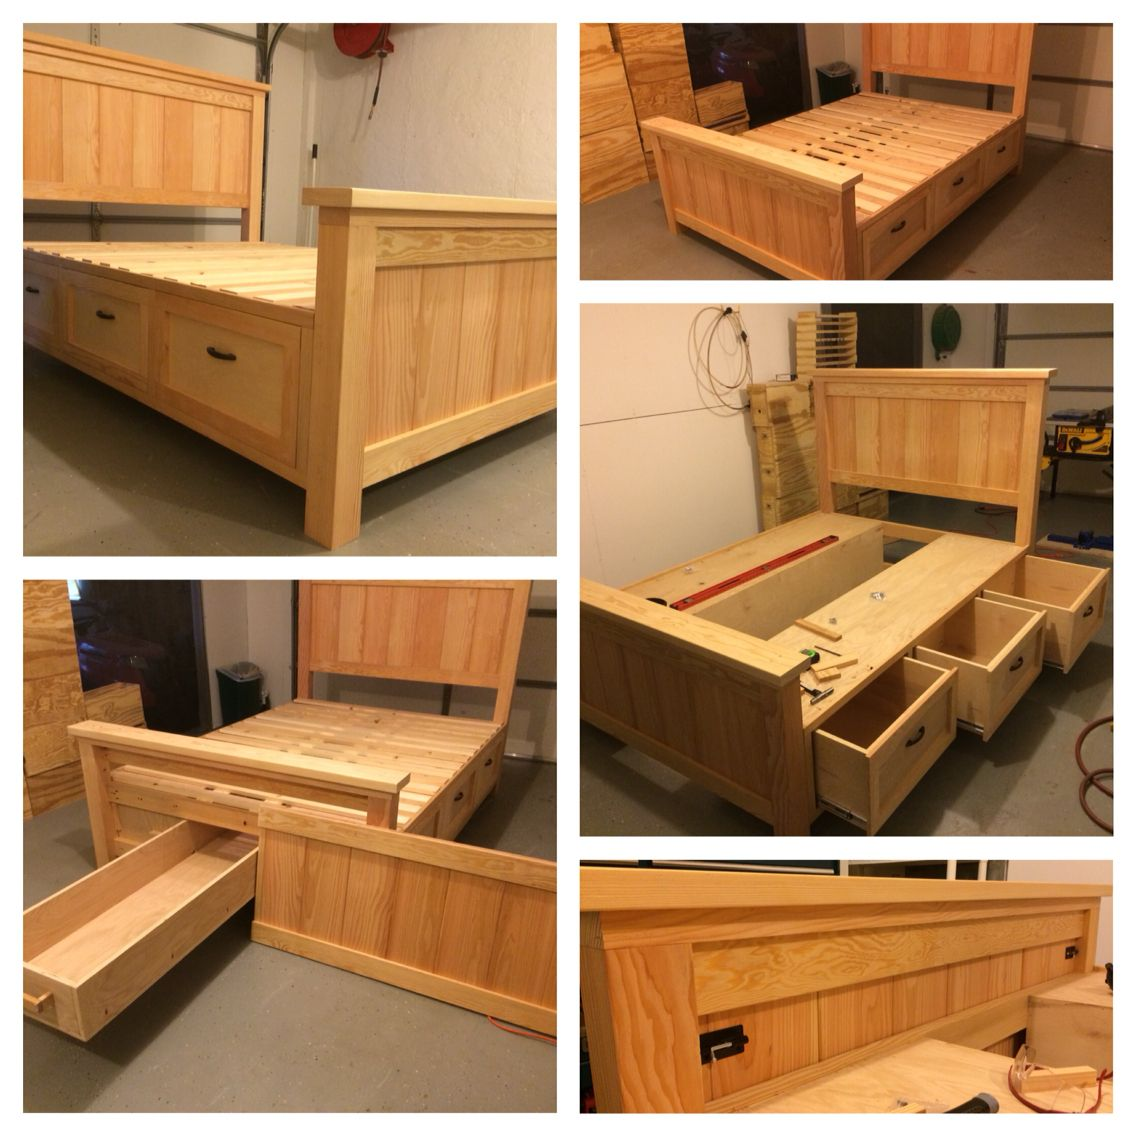 It Is A Queen Farmhouse Storage Bed With A Hidden Storage Drawer